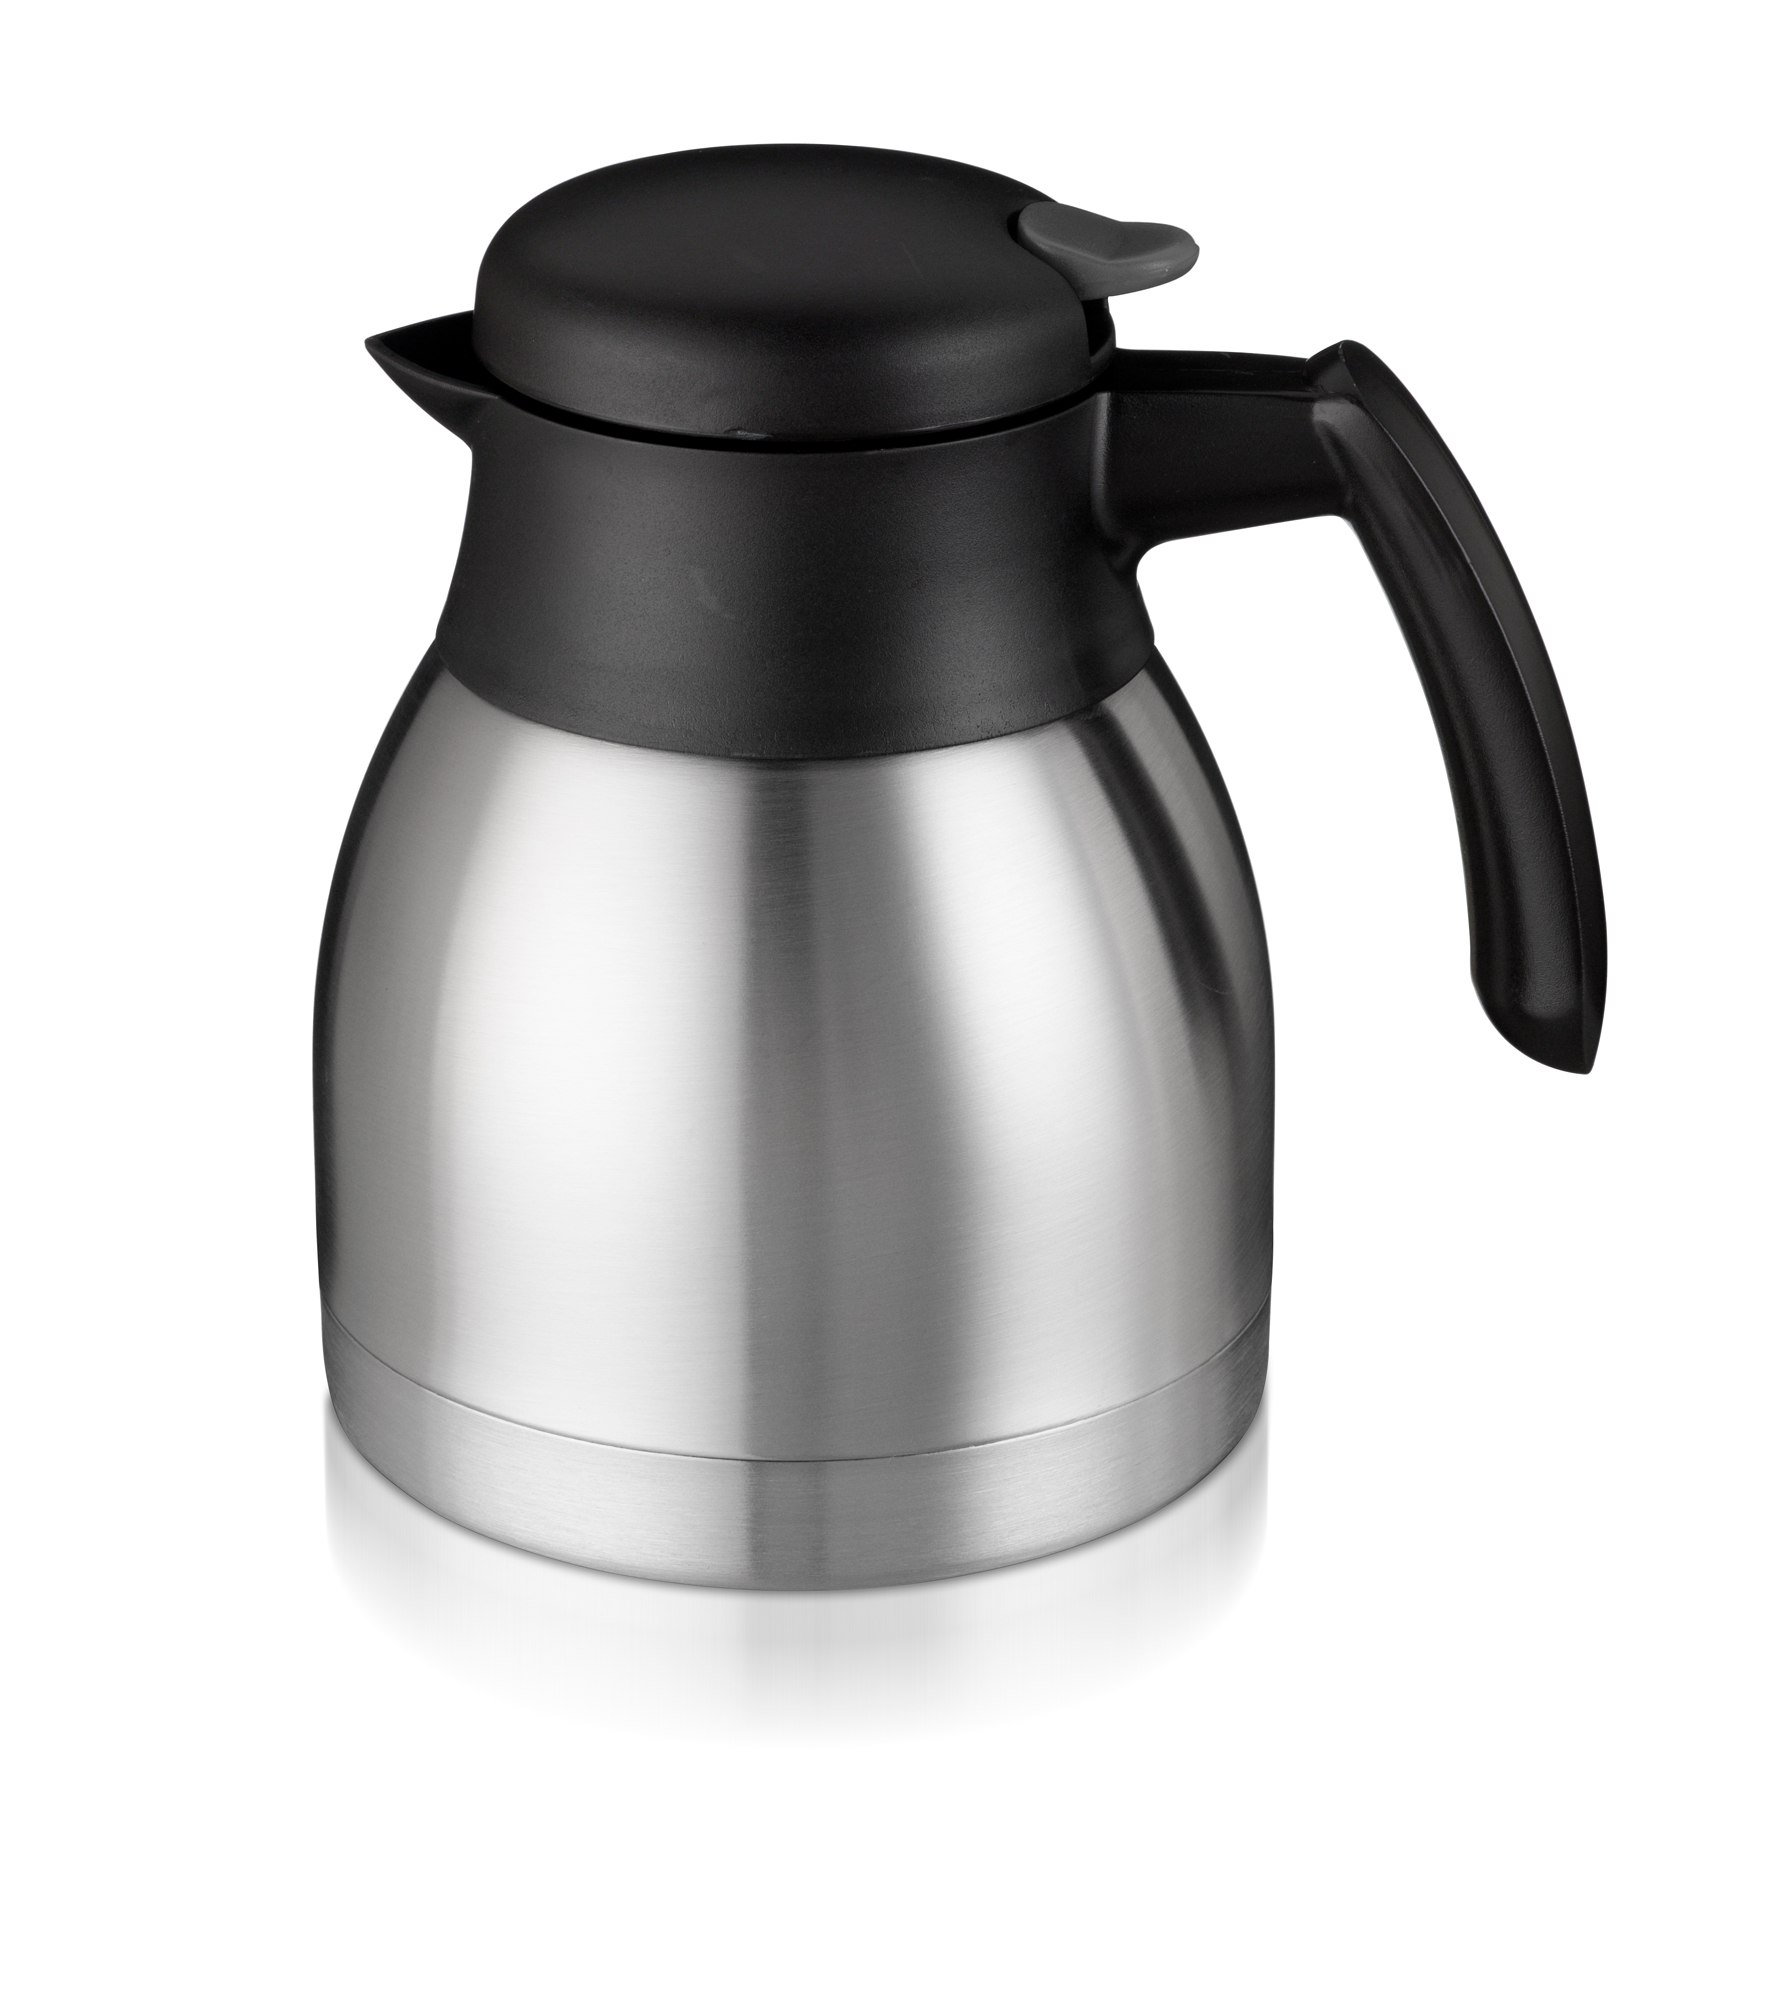 Vacuum flask | Decanters, thermos, and airpots | Accessories